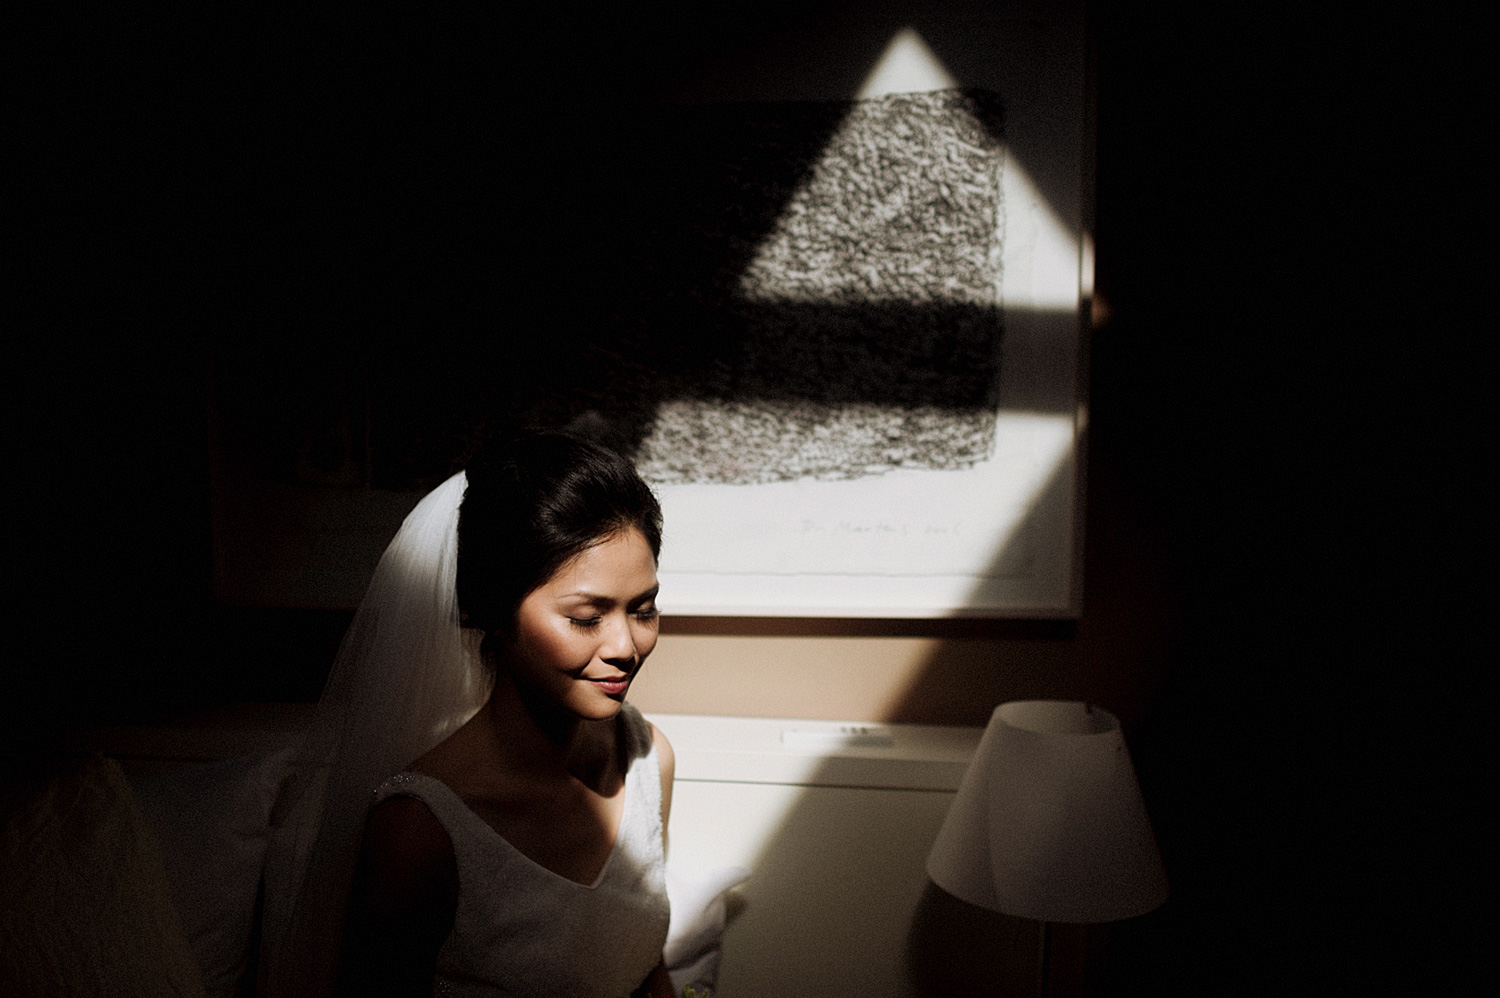 014-sjoerdbooijphotography-wedding-nard-joming.jpg